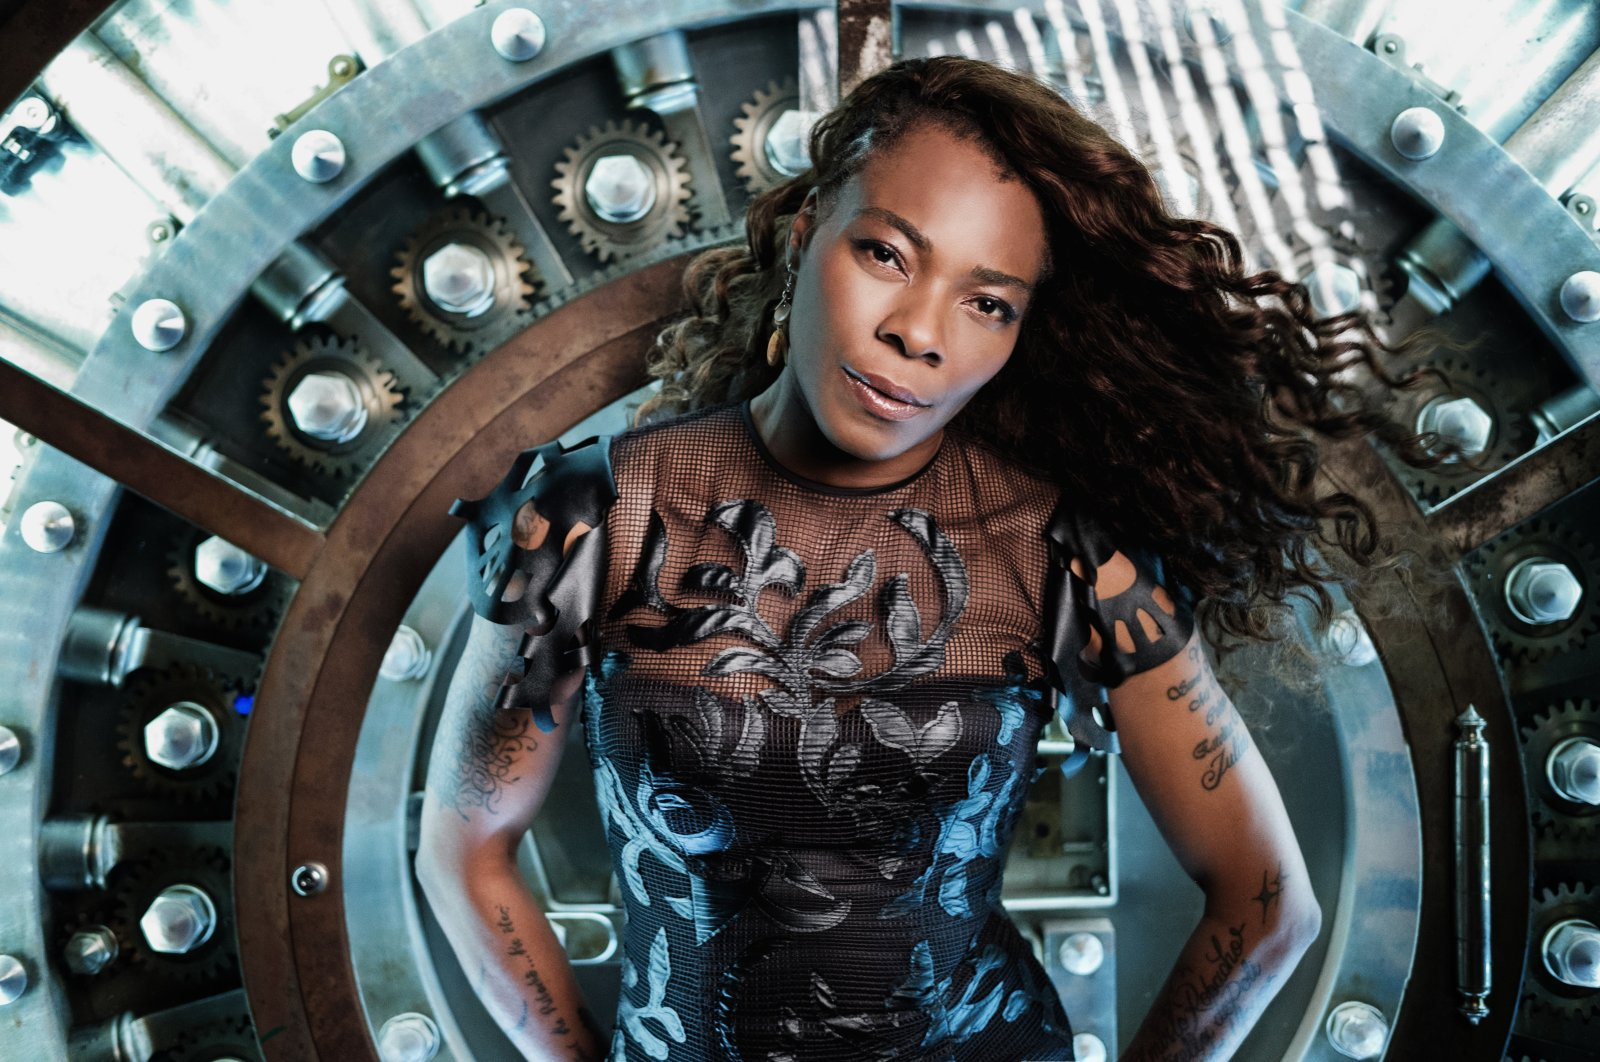 Buika will perform at Istanbul's Zorlu Performing Arts Center (PSM), Istanbul, Sept. 17.